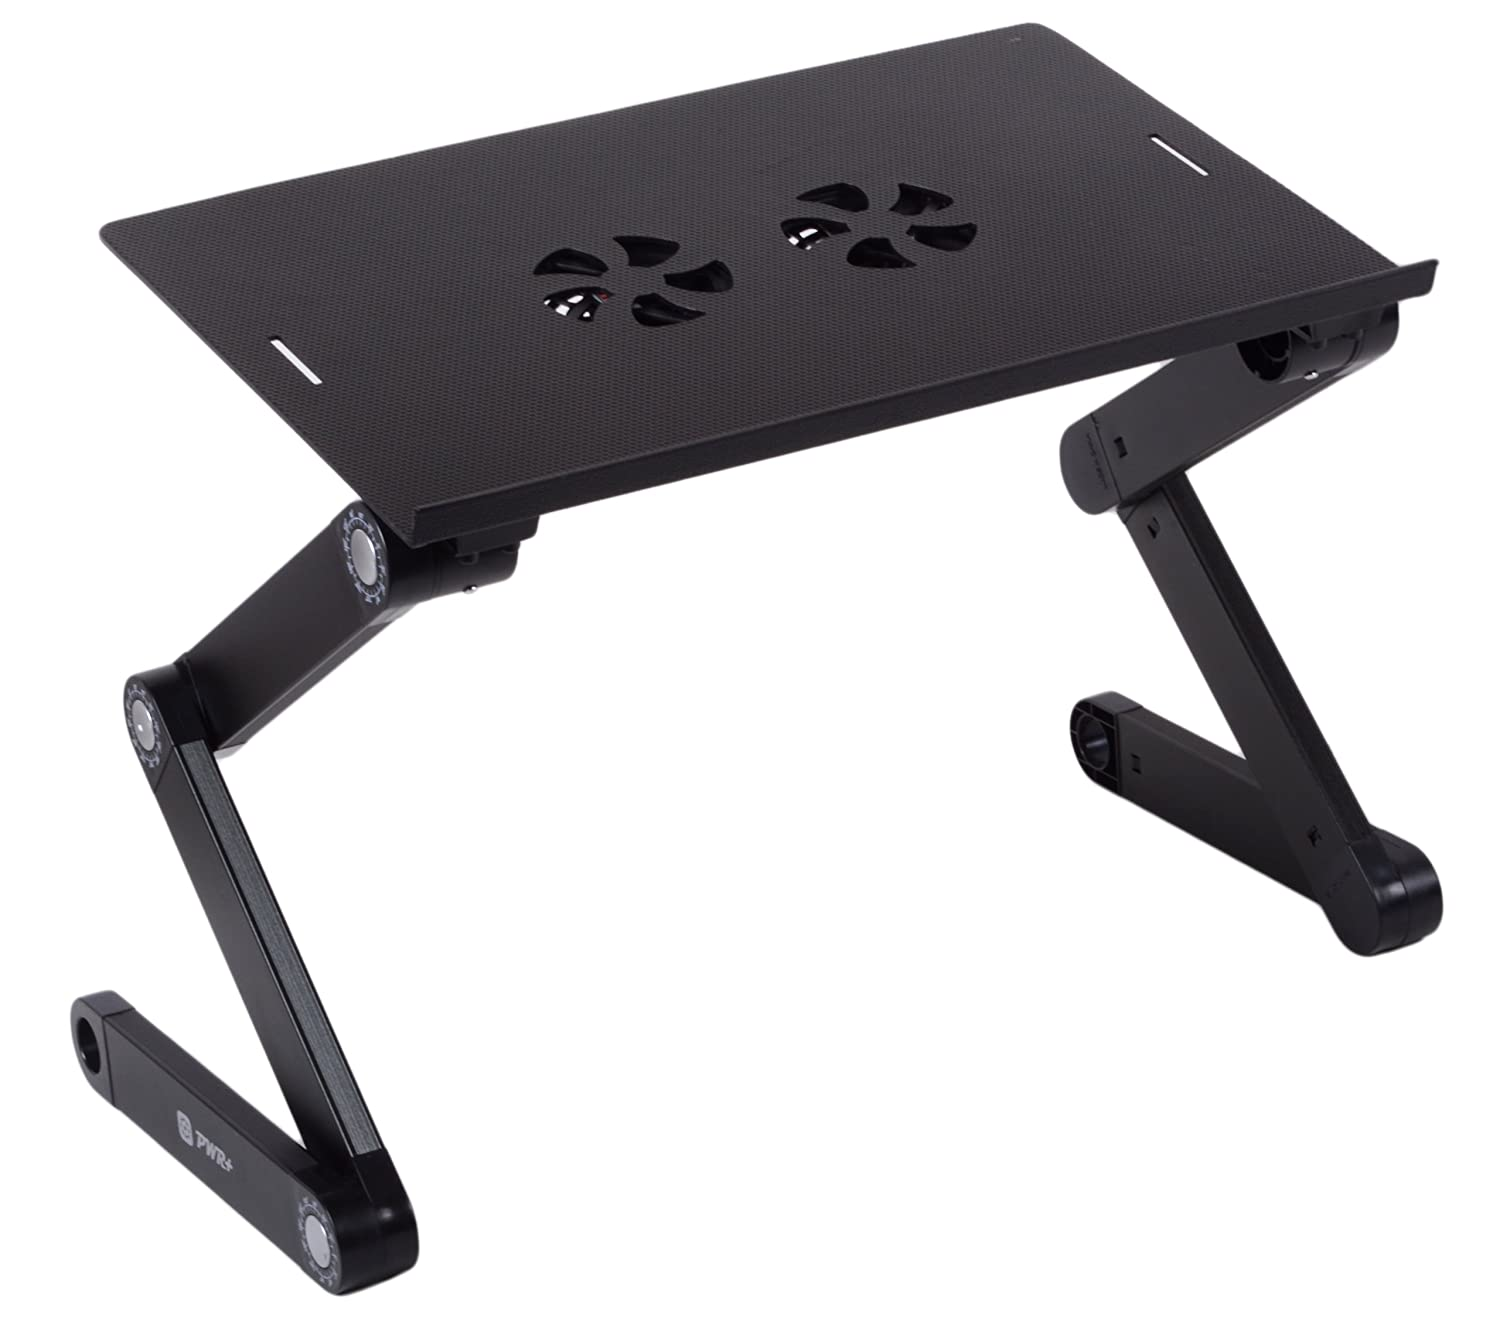 Pwr+ Portable Folding Laptop Notebook Book Ultrabook Table Desk Tray Stand with Cooling Pad - 2x Cooler Fans - Fully Adjustable Angle at Sears.com